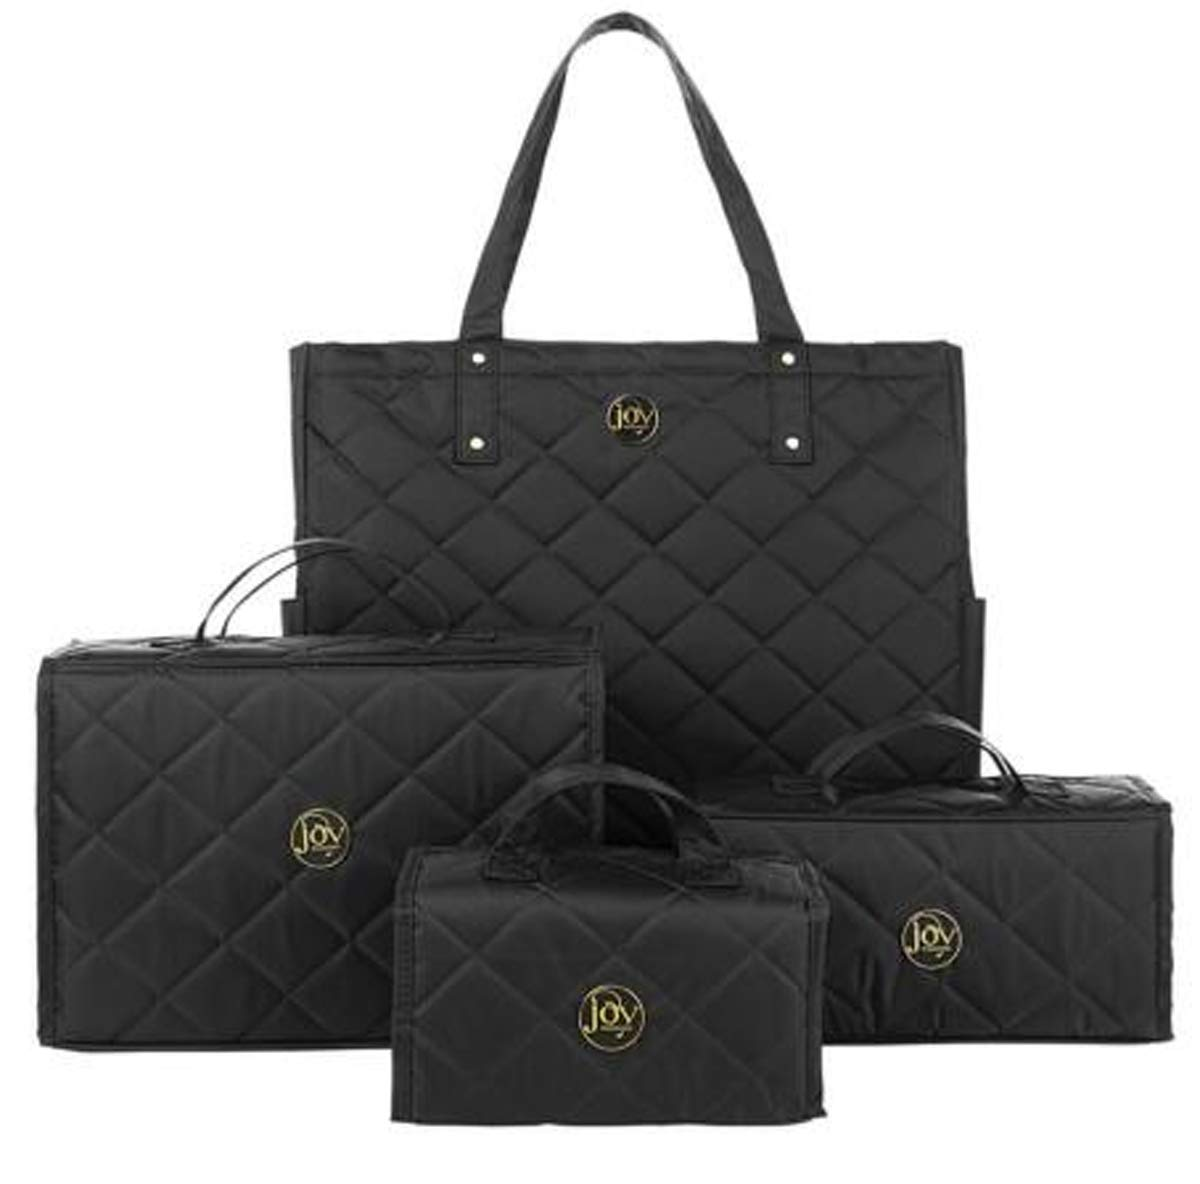 Joy Mangano 4-piece Quilted Better Beauty Case Set w/RFID Big Shopper Tote ~ Black